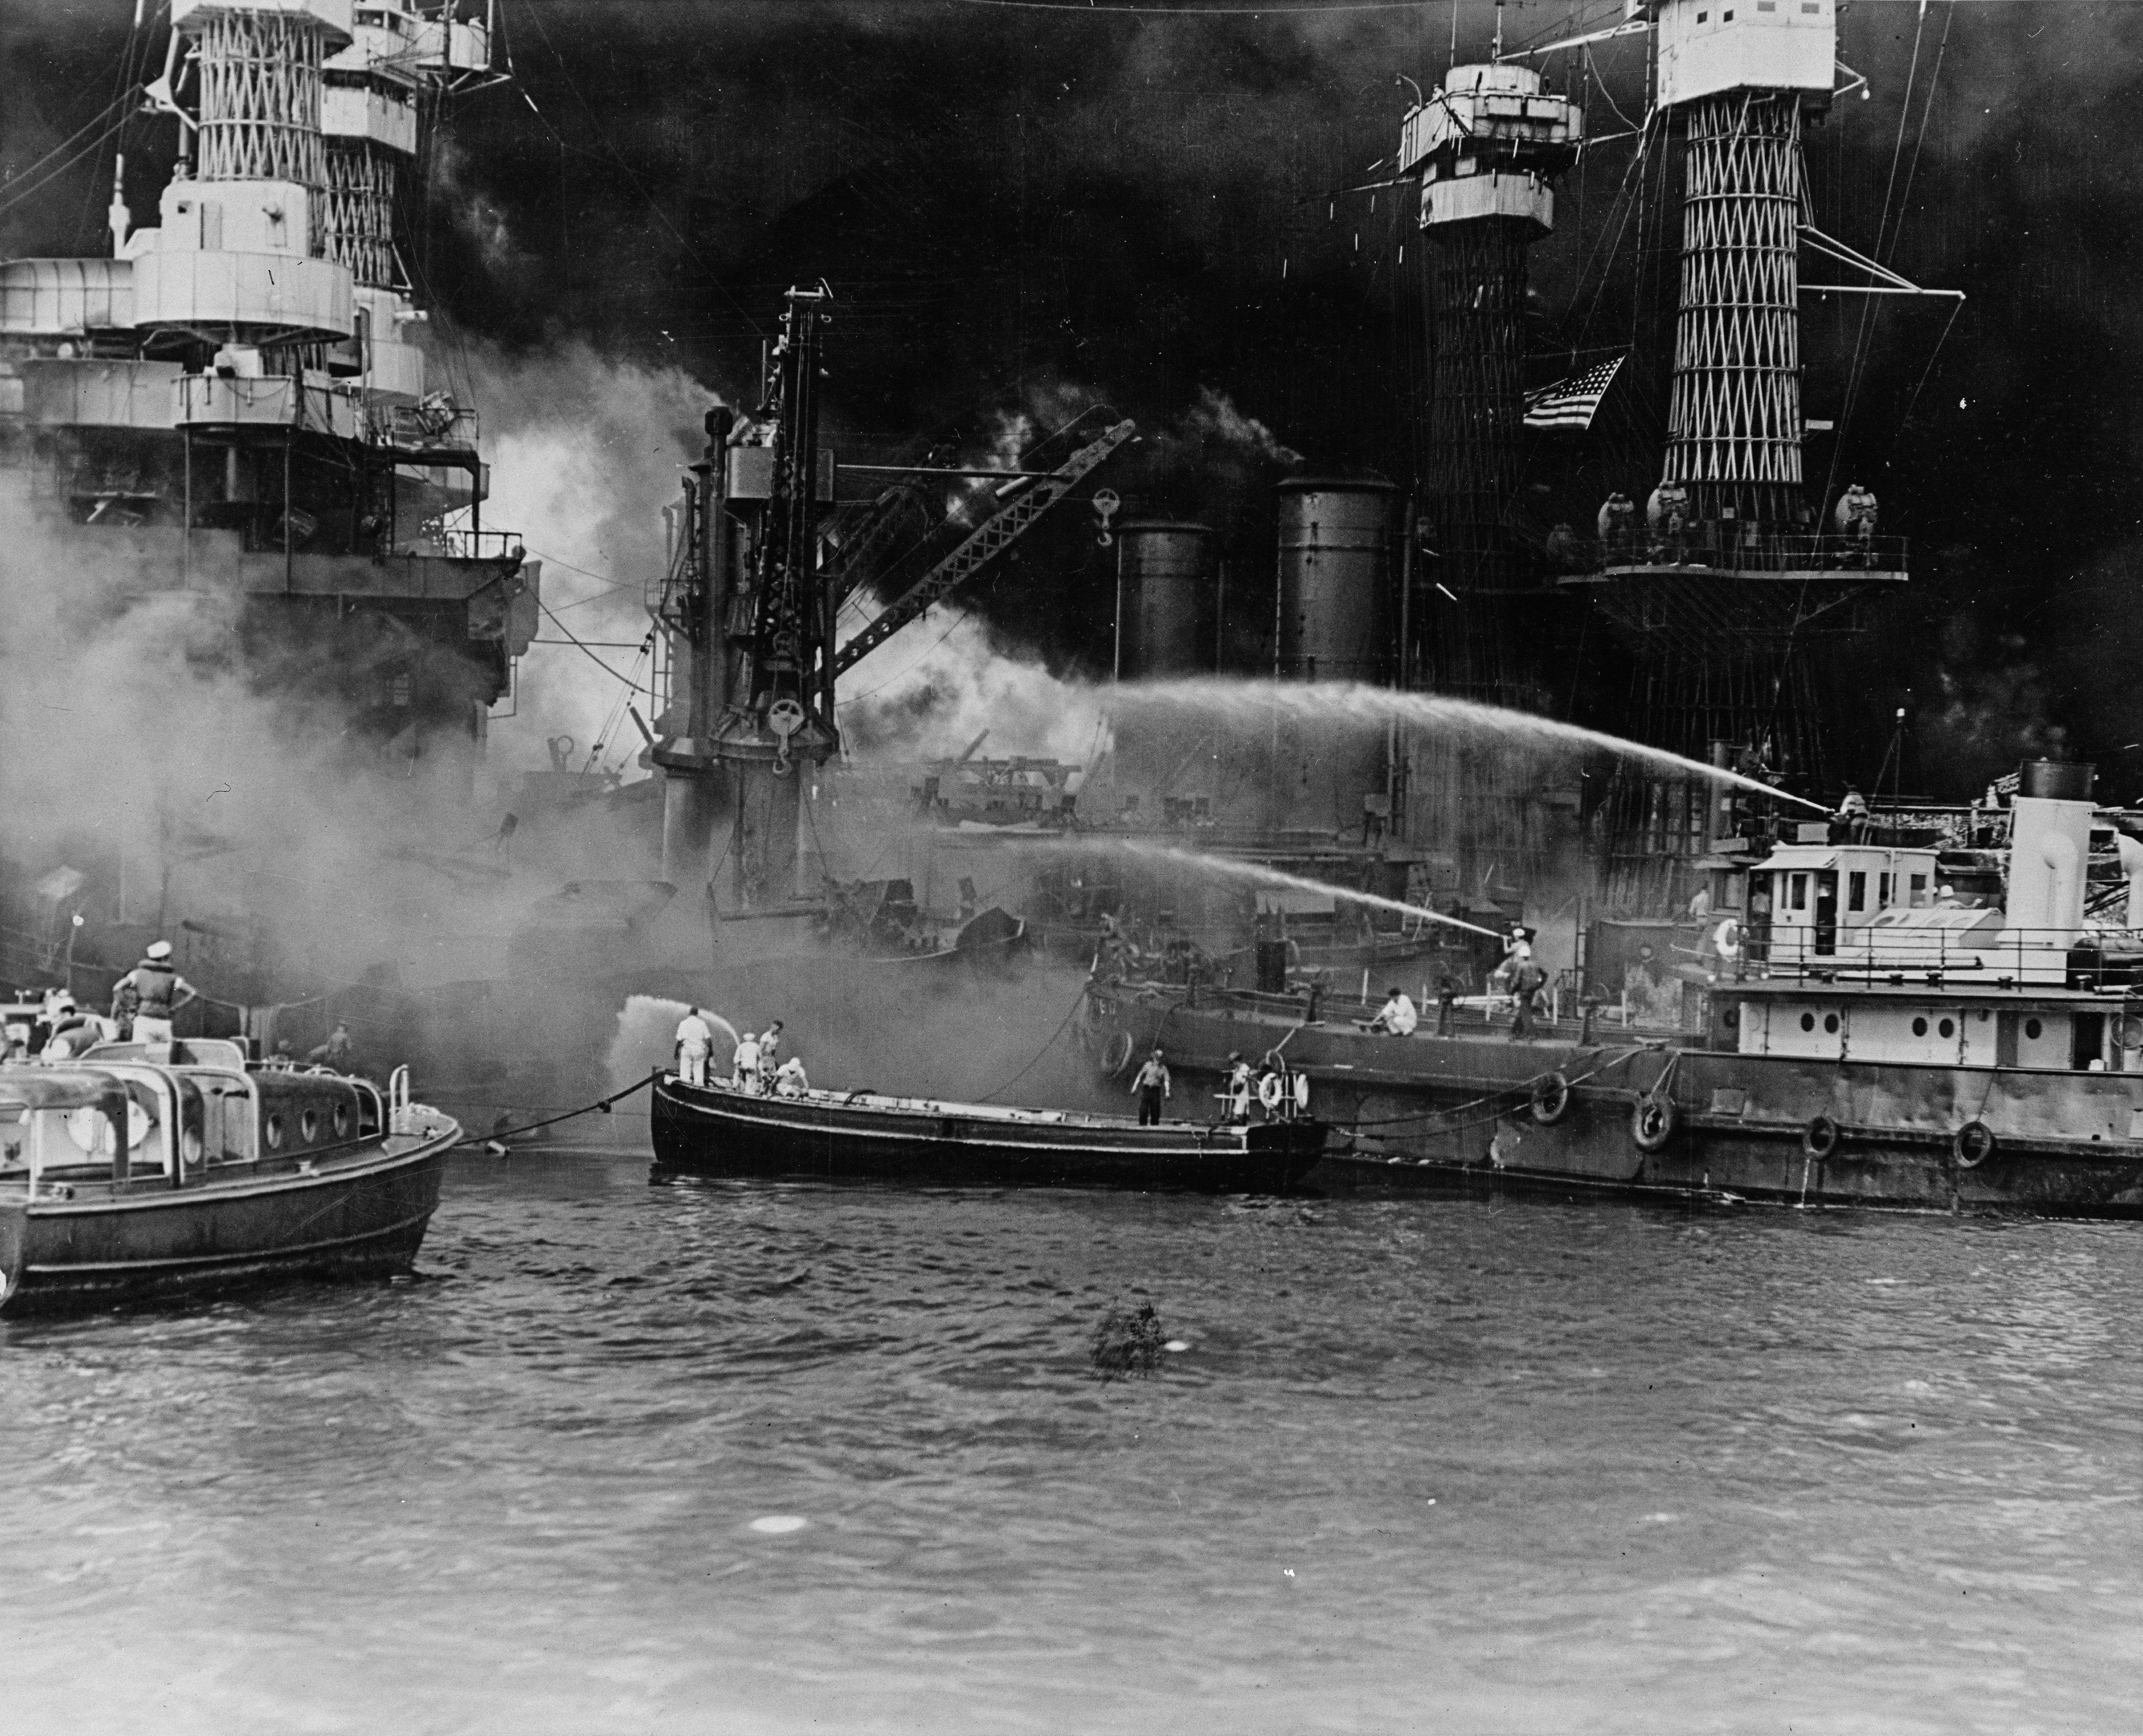 Photo of Fighting fires on USS West Virginia